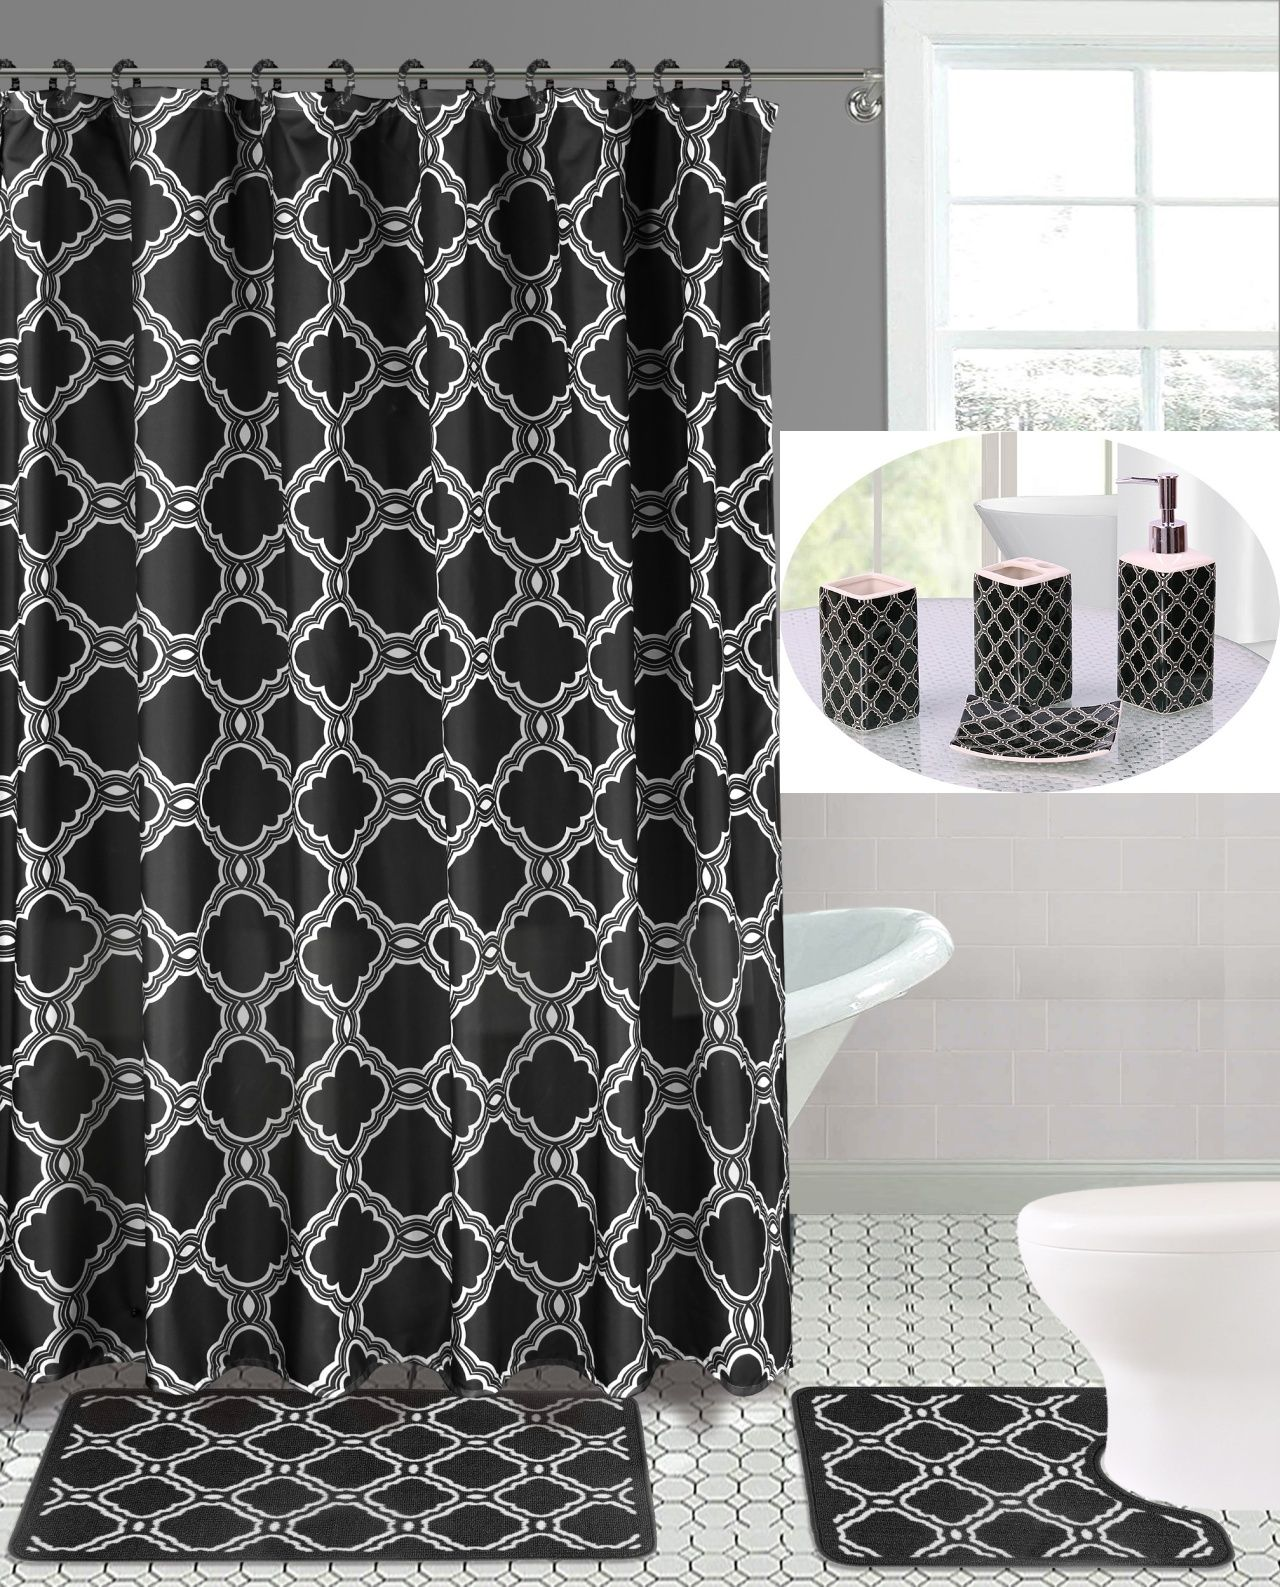 19pc Honey Black Bathroom Set Embroidery Banded Washable Rubber Backing Anti Slip Includes 2 Bath Rug Math 1 Shower Curtain 12pc Rings Covered 4 Accessori In 2021 Bathroom Bath Mats Black Bathroom Sets Complete Bathrooms [ 1587 x 1280 Pixel ]